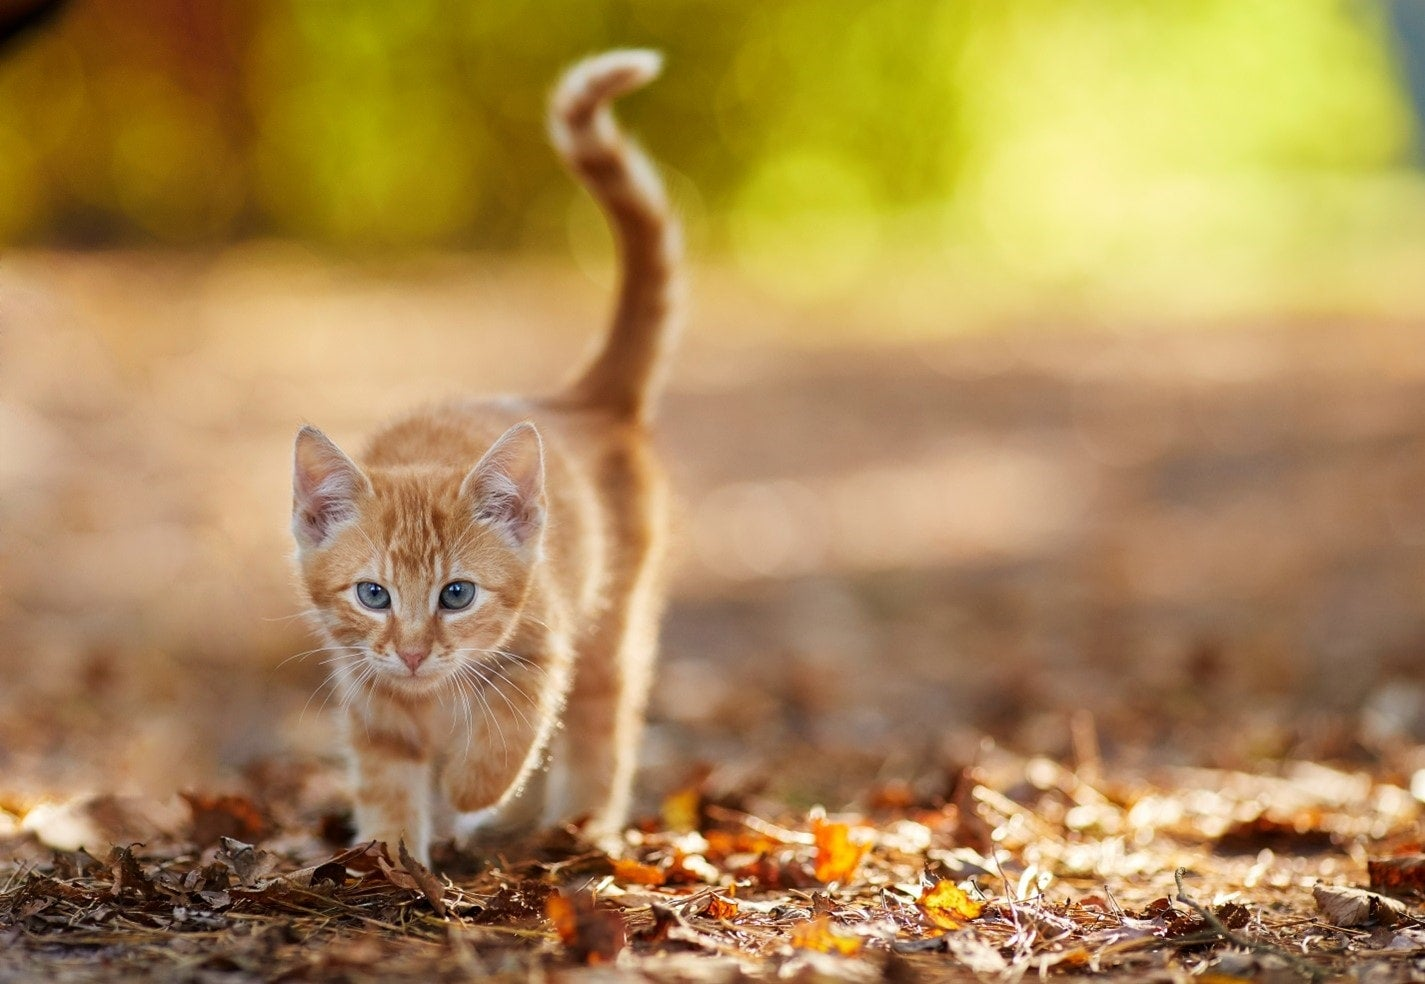 A cat walking in leaves